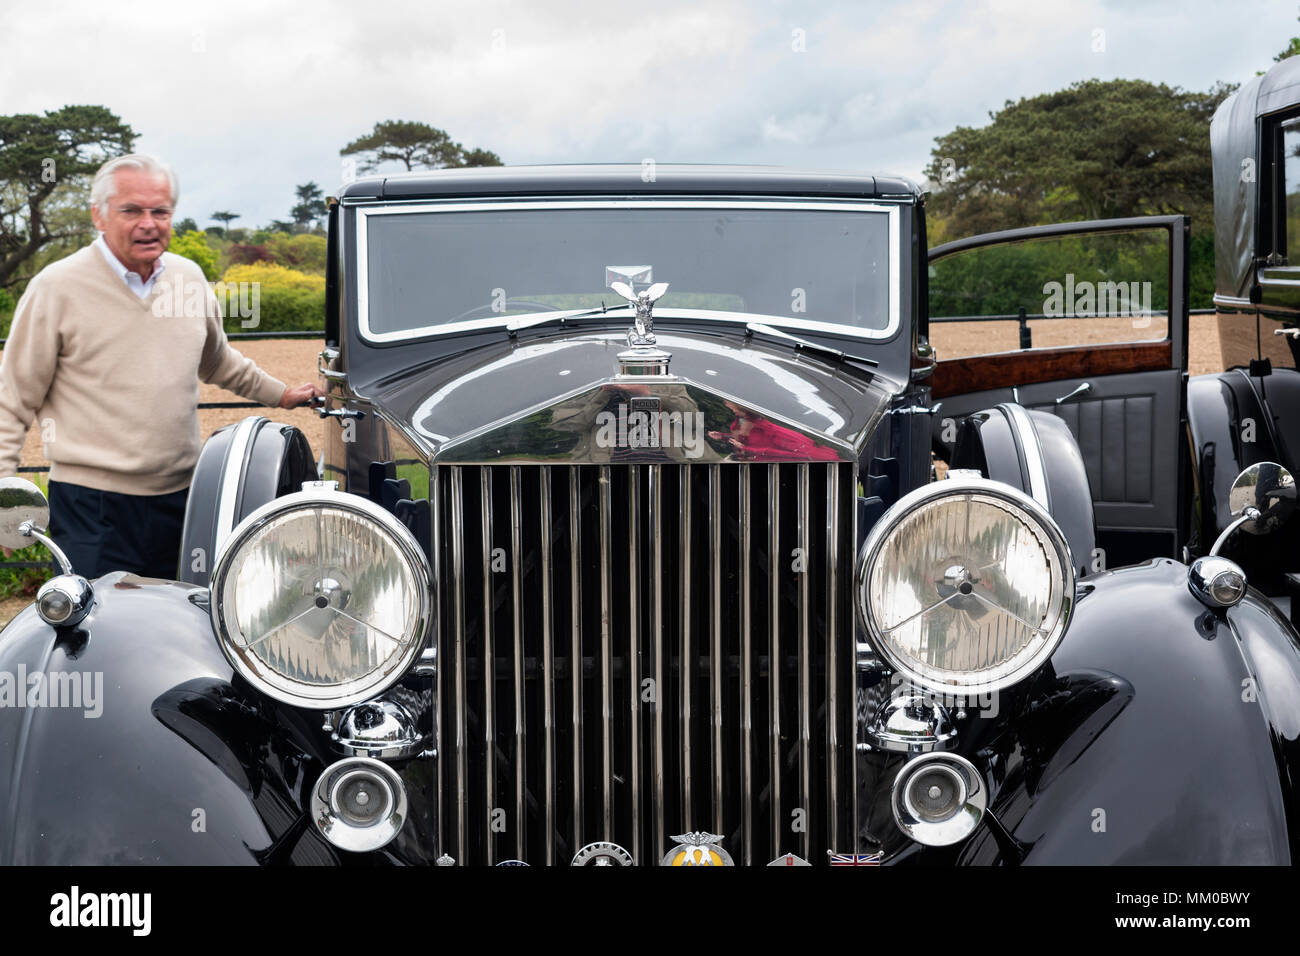 Trebah, Cornwall, England, UK. 9th May 2108. The 20-Ghost Club, the oldest Rolls-Royce car club in the world gathered at Trebah in Cornwall today as they toured the county, the club is dedicated to the preservation of pre 1940 Rolls Royce  motor cars. Credit: Kevin Britland/Alamy Live News. - Stock Image